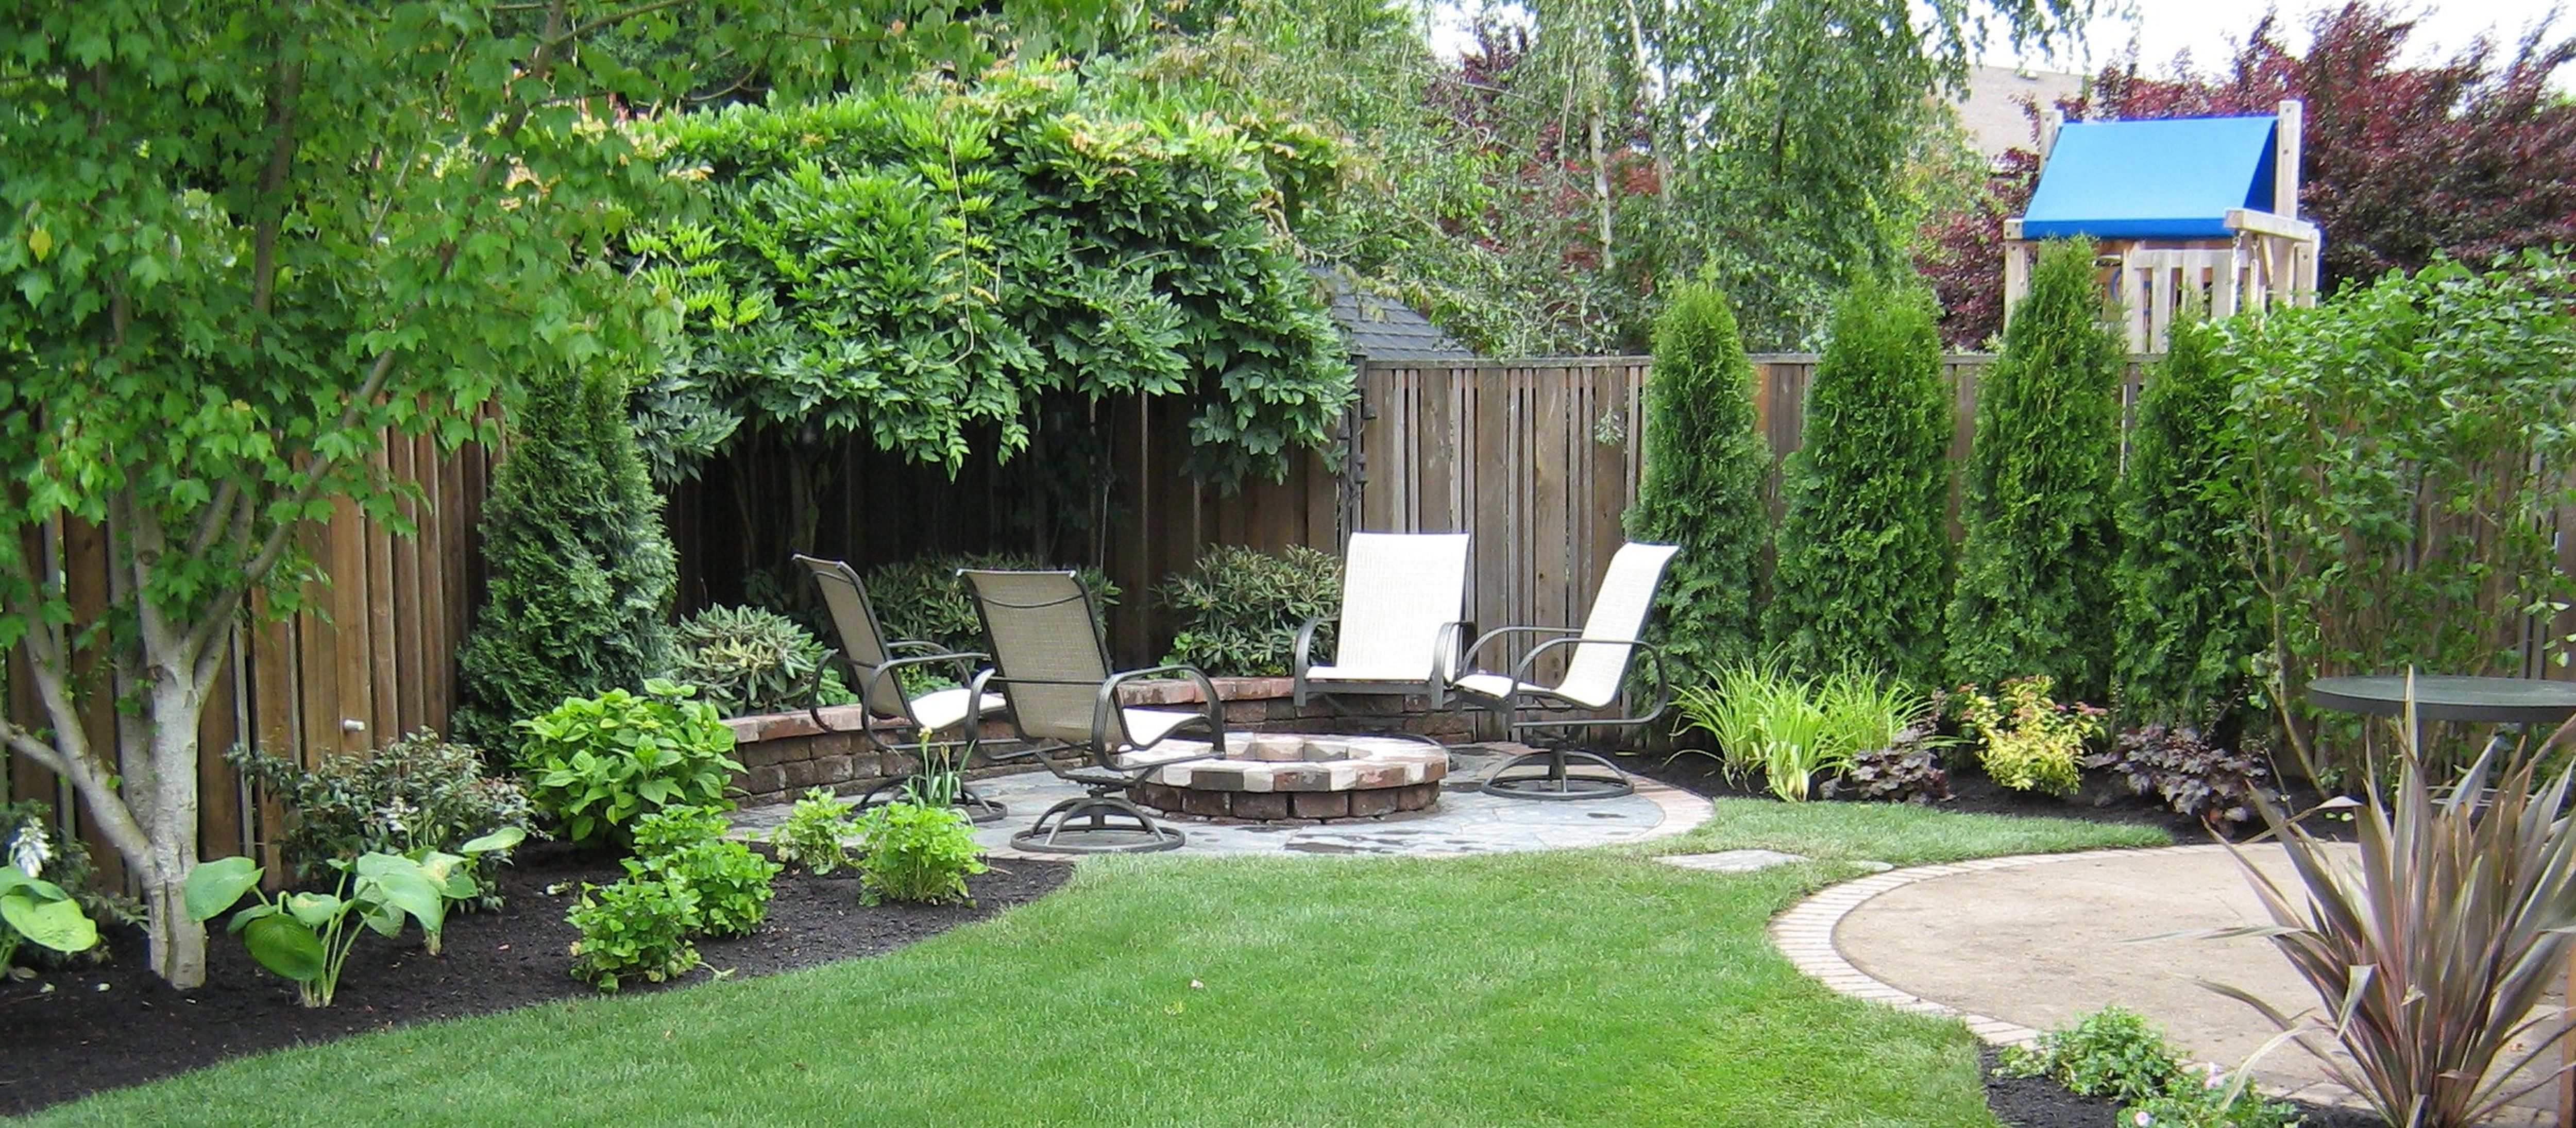 Amazing Ideas For Small Backyard Landscaping Great Affordable for 15 Some of the Coolest Tricks of How to Improve How To Landscape Backyard